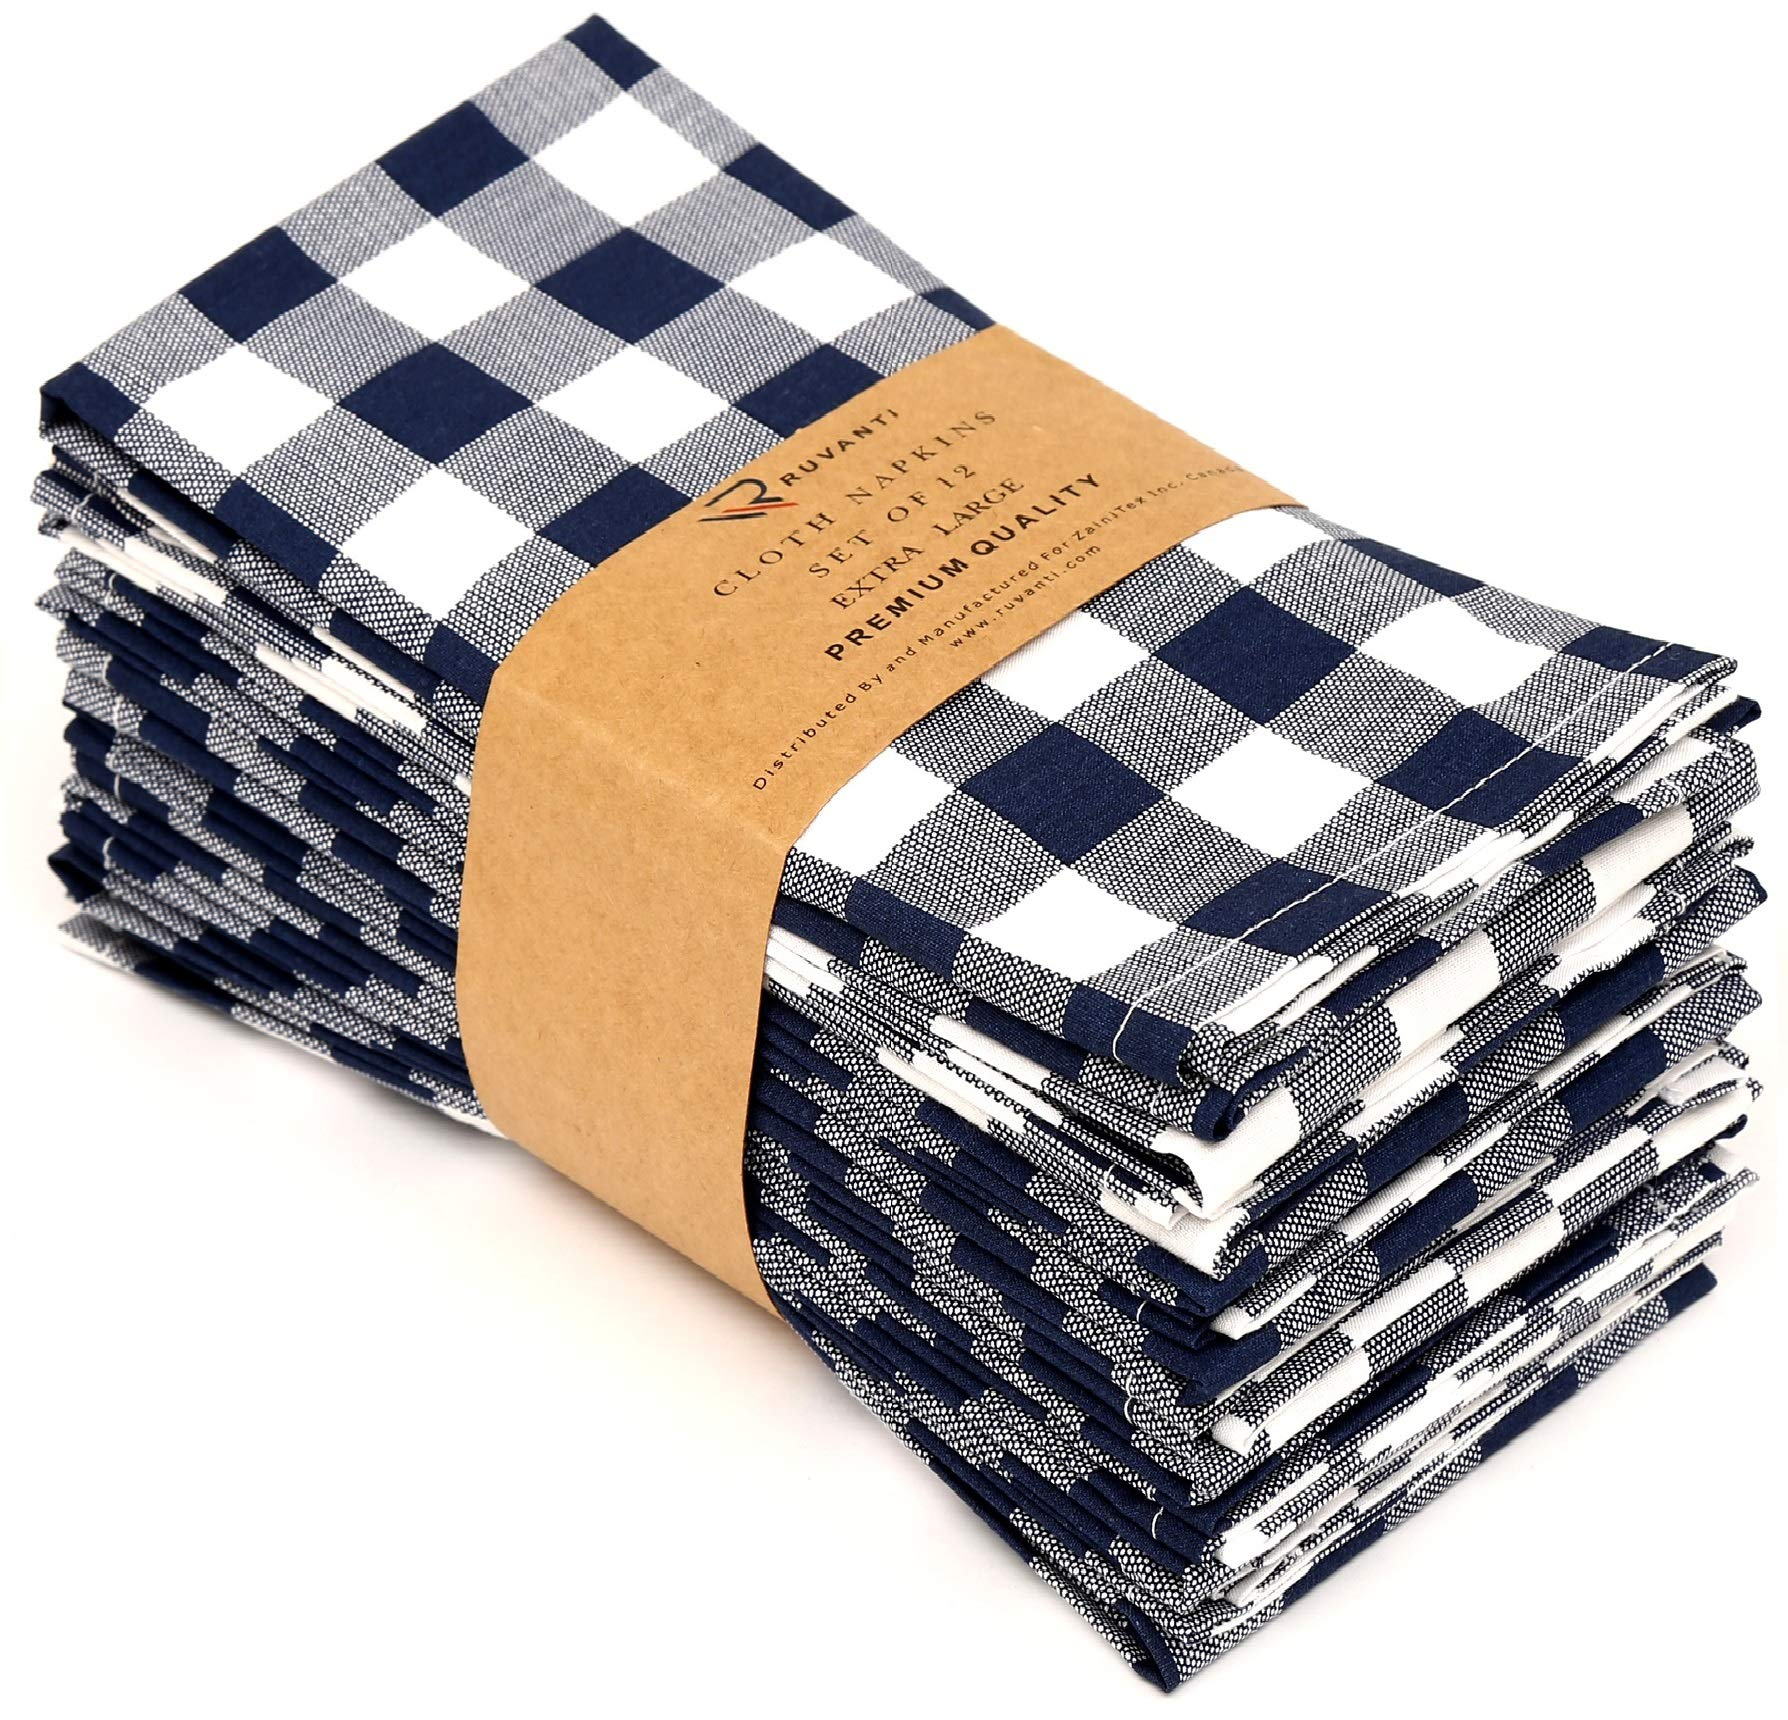 Ruvanti Cloth Napkins 12 Pack(100% Cotton 20'' X 20'') Navy Blue & Grey Buffalo Check Napkins,Soft & Comfortable Cotton Plaid Napkins.Cloth Dinner Napkins/Fabric Napkins for Dinners & Cocktail Parties. by Ruvanti